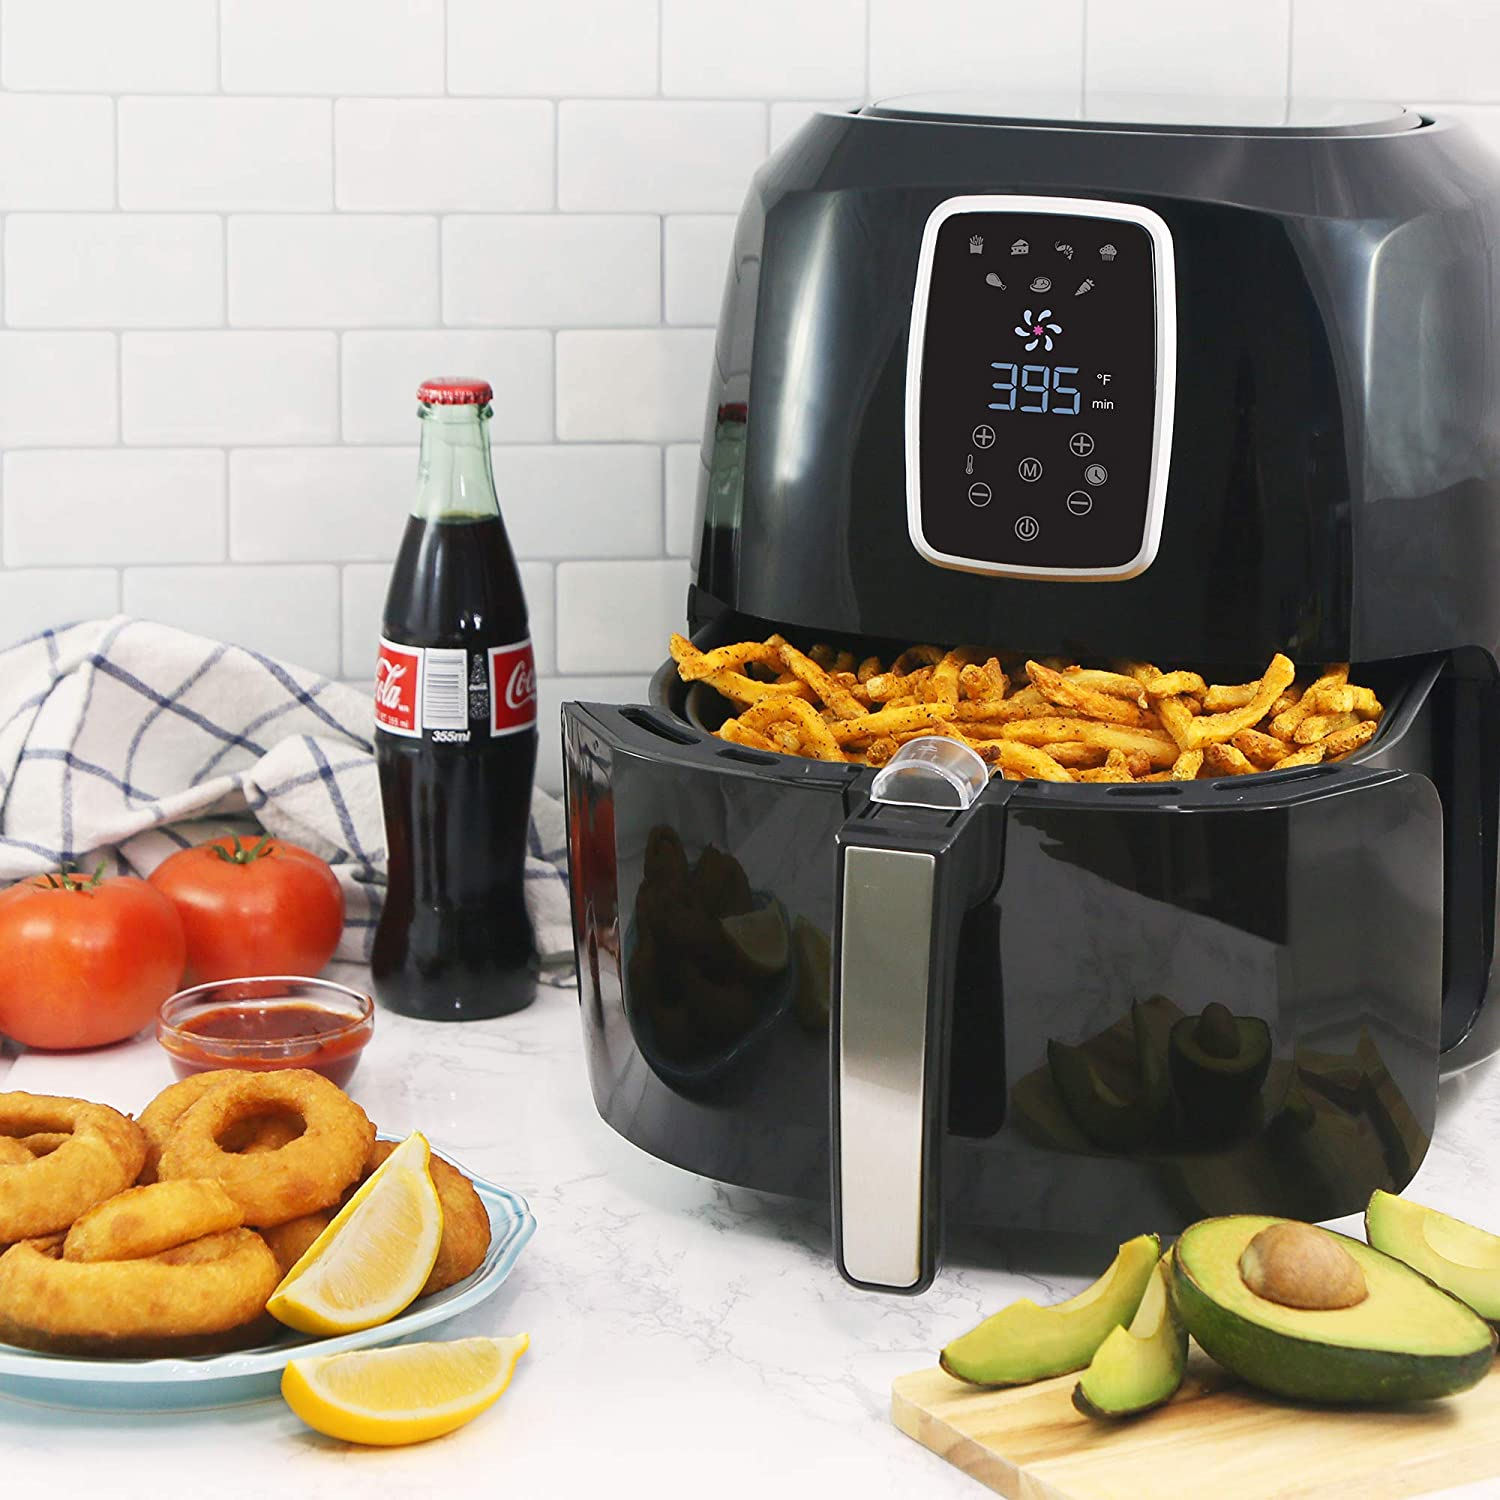 Elite Platinum EAF-1616 Electric Digital Hot Air Fryer Oil-Less Healthy Cooker with Extra Large Capacity-4 Lbs of Food, 7 Menu Functions, PFOA PTFE Free, 1800-Watts with 26 Recipes, 5.5 Quart, Black